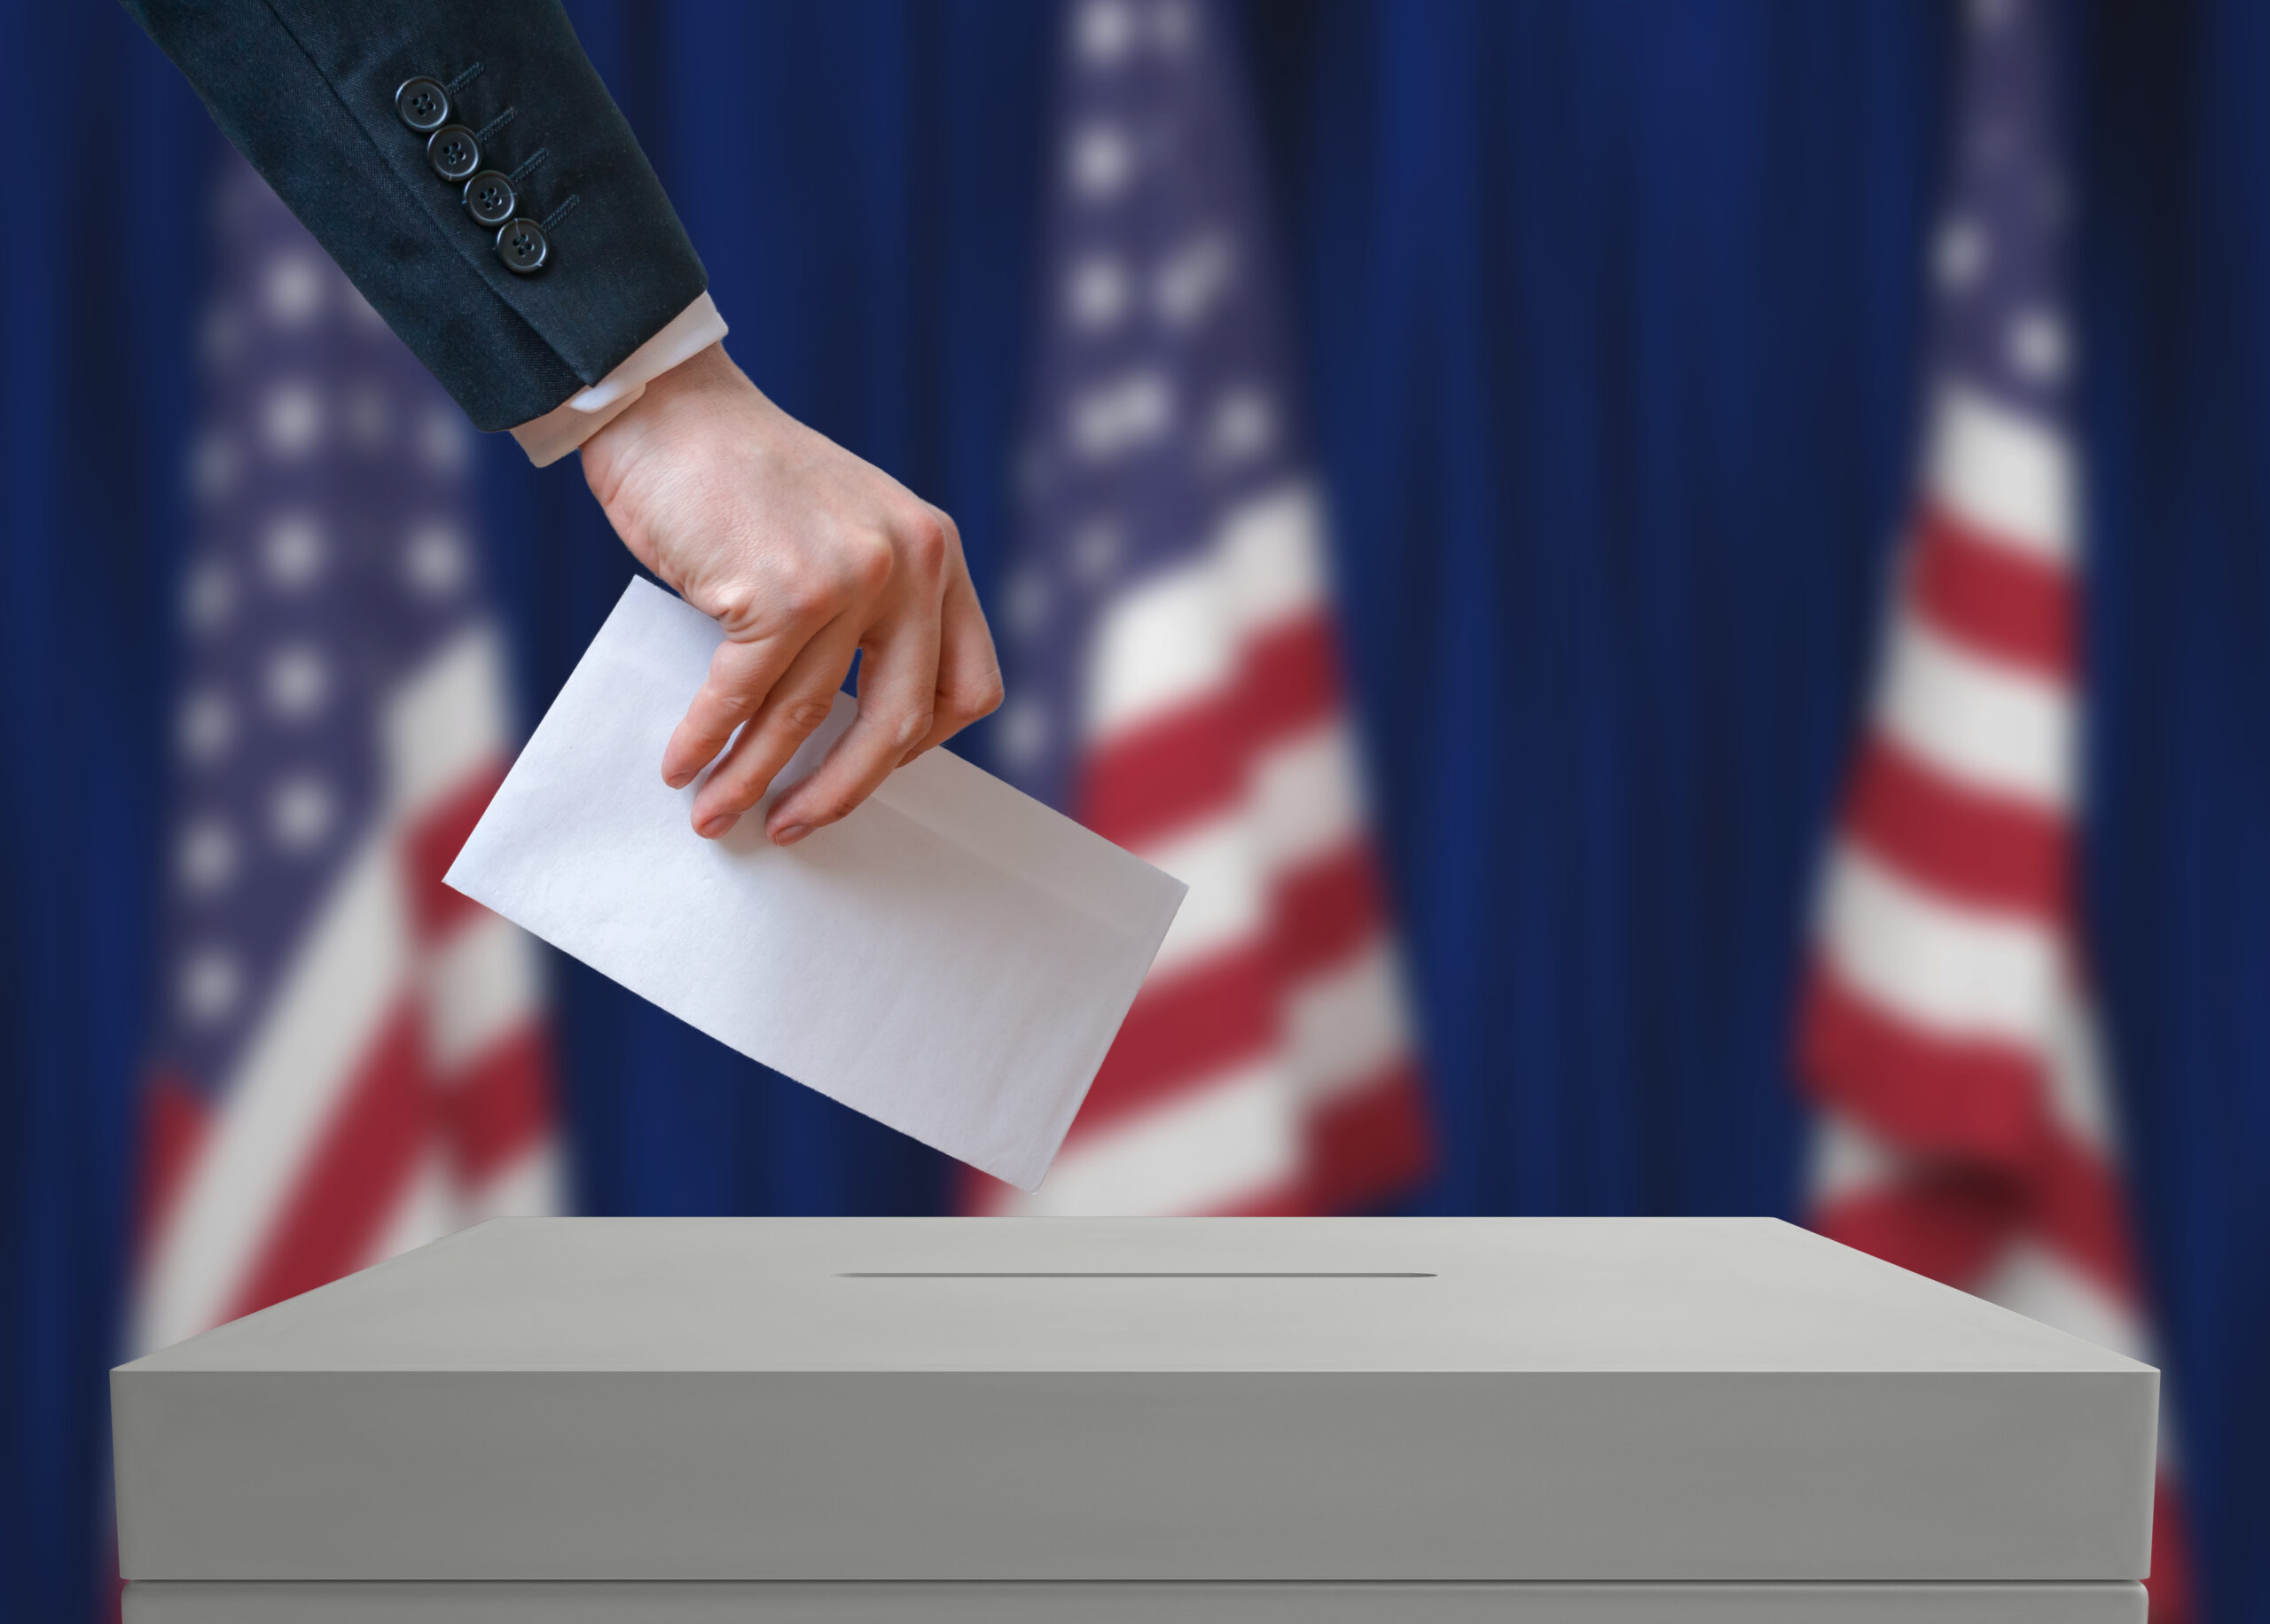 Immigrant voting in the 2020 election.